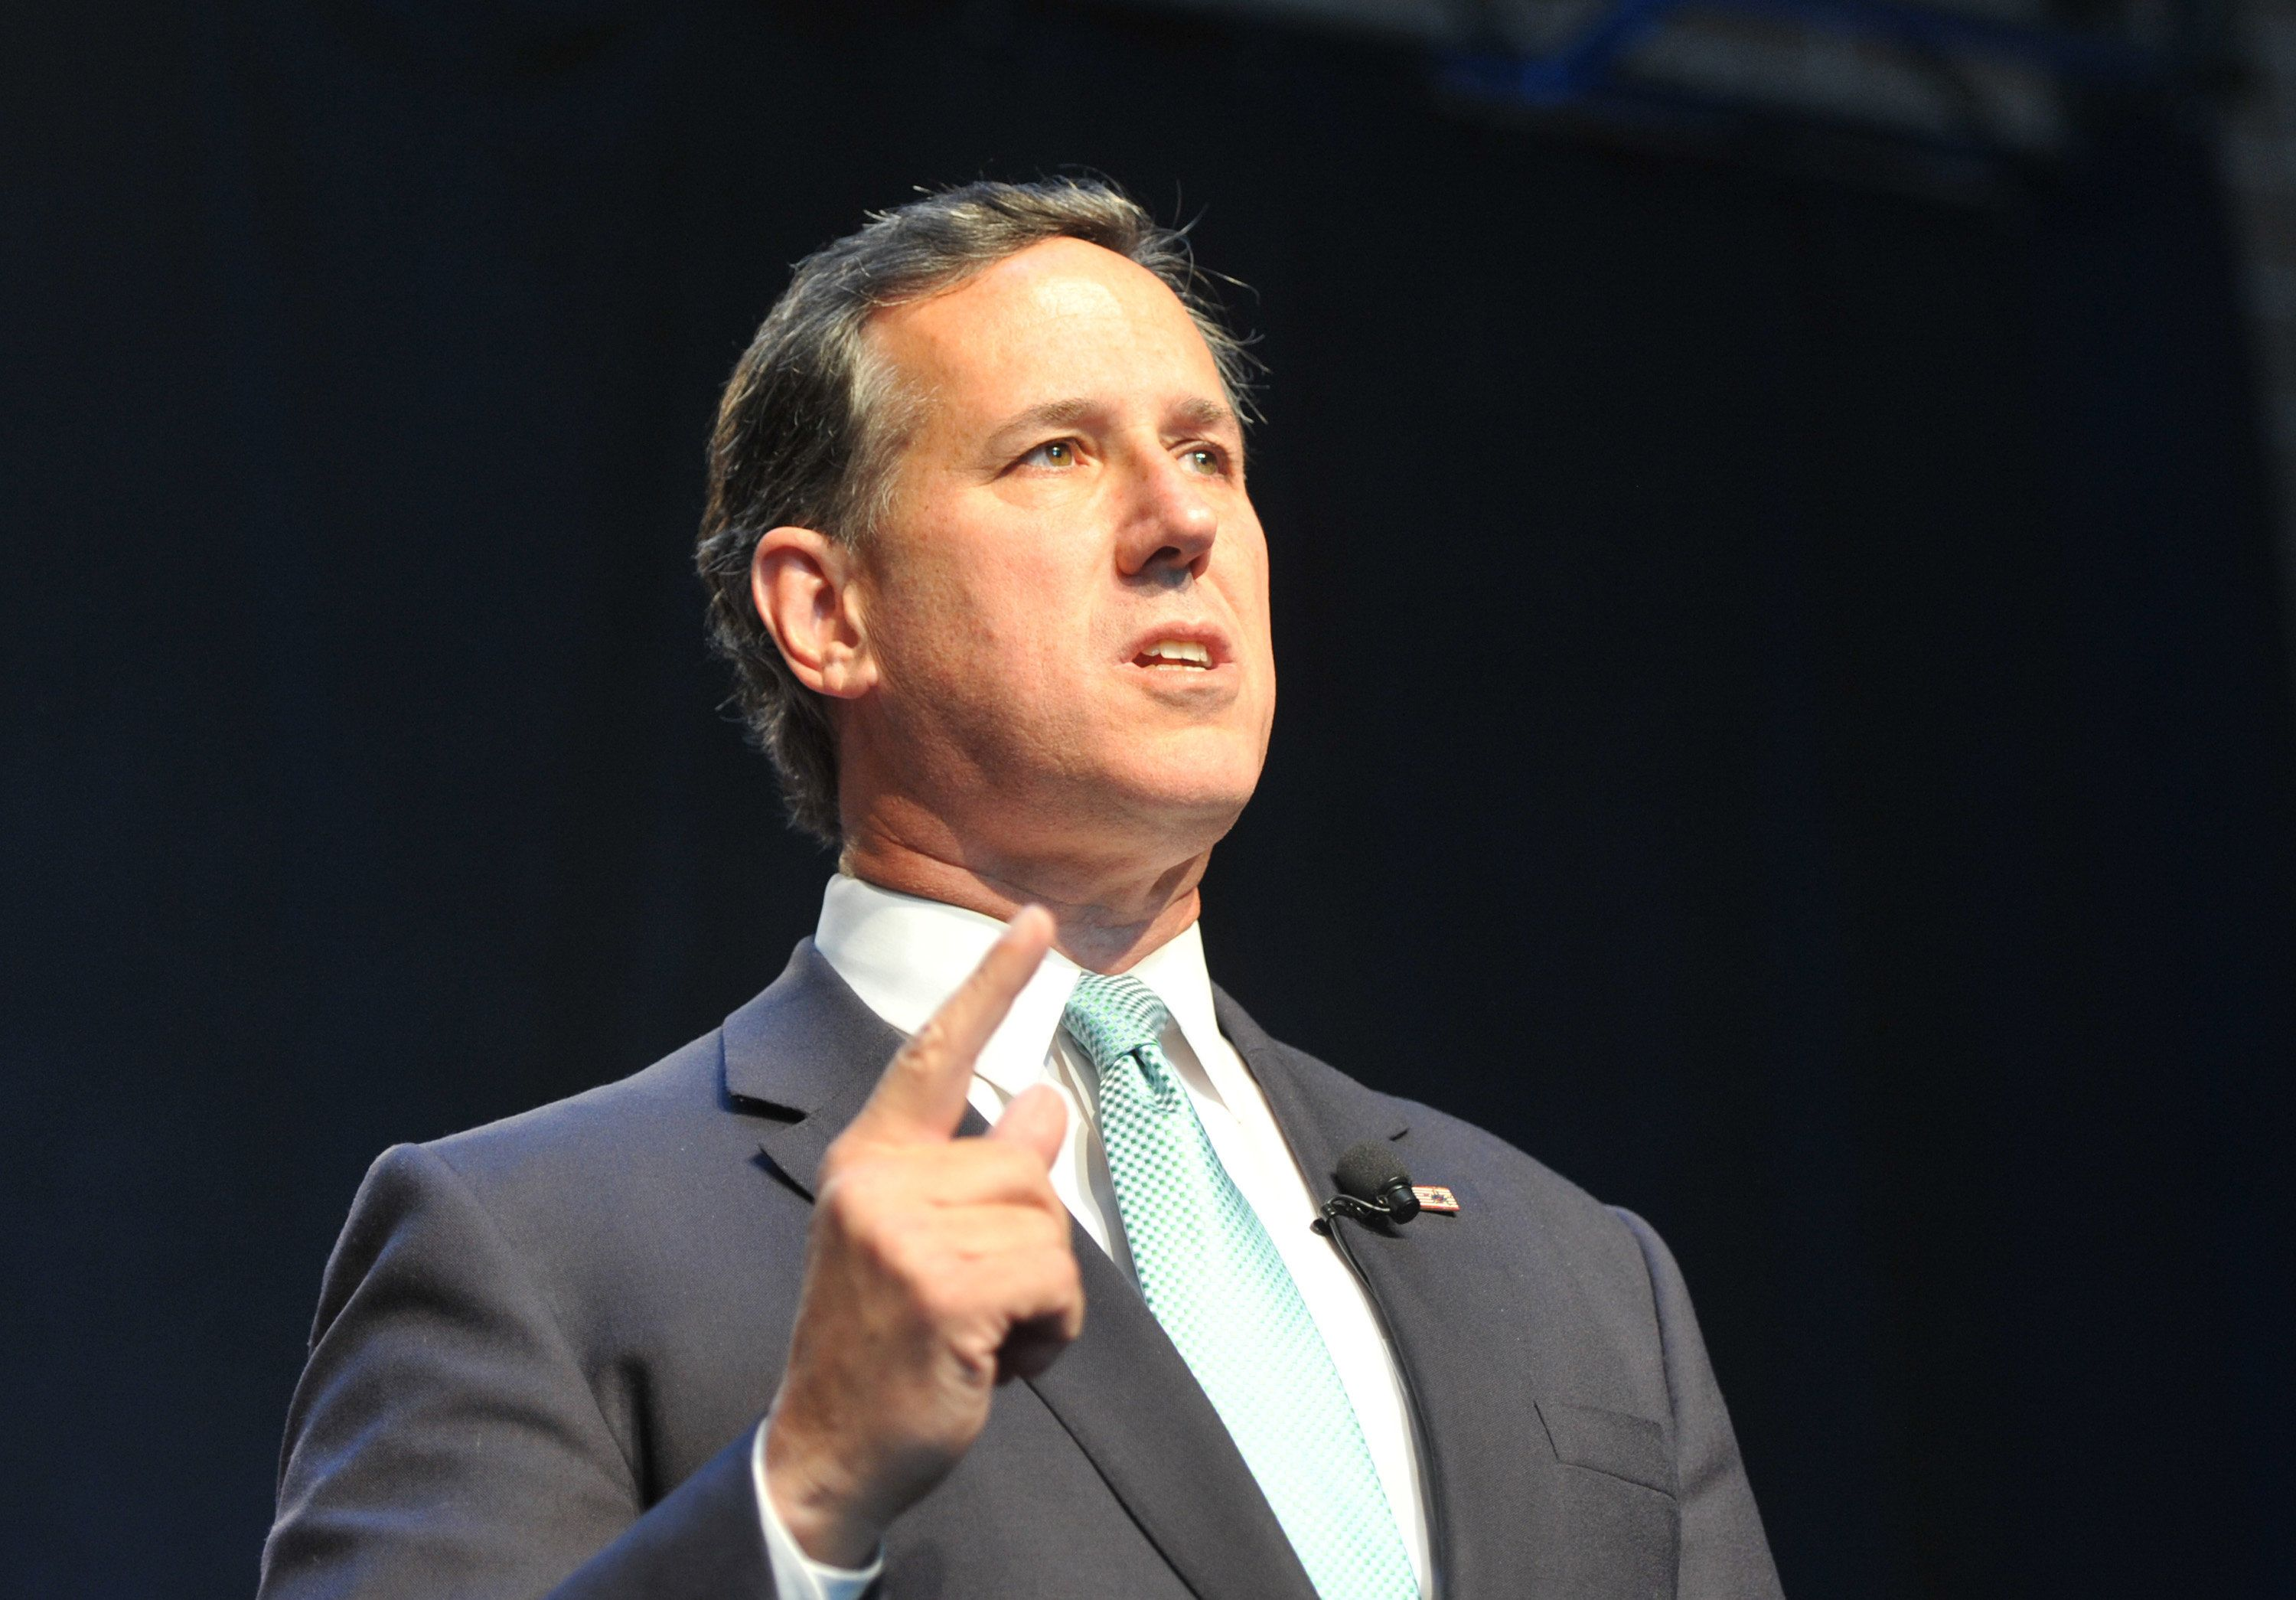 DES MOINES, IA-SEPTEMBER 19: Former Sen. Rick Santorum speaks at the Iowa Faith & Freedom Coalition 15th Annual Family Banquet and Presidential Forum held at the Iowa State fairgrounds on September 19, 2015 in Des Moines, Iowa.  Eight of the Republican candidates including Santorum and Donald Trump are expected to attend the event. (Photo by Steve Pope/Getty Images)